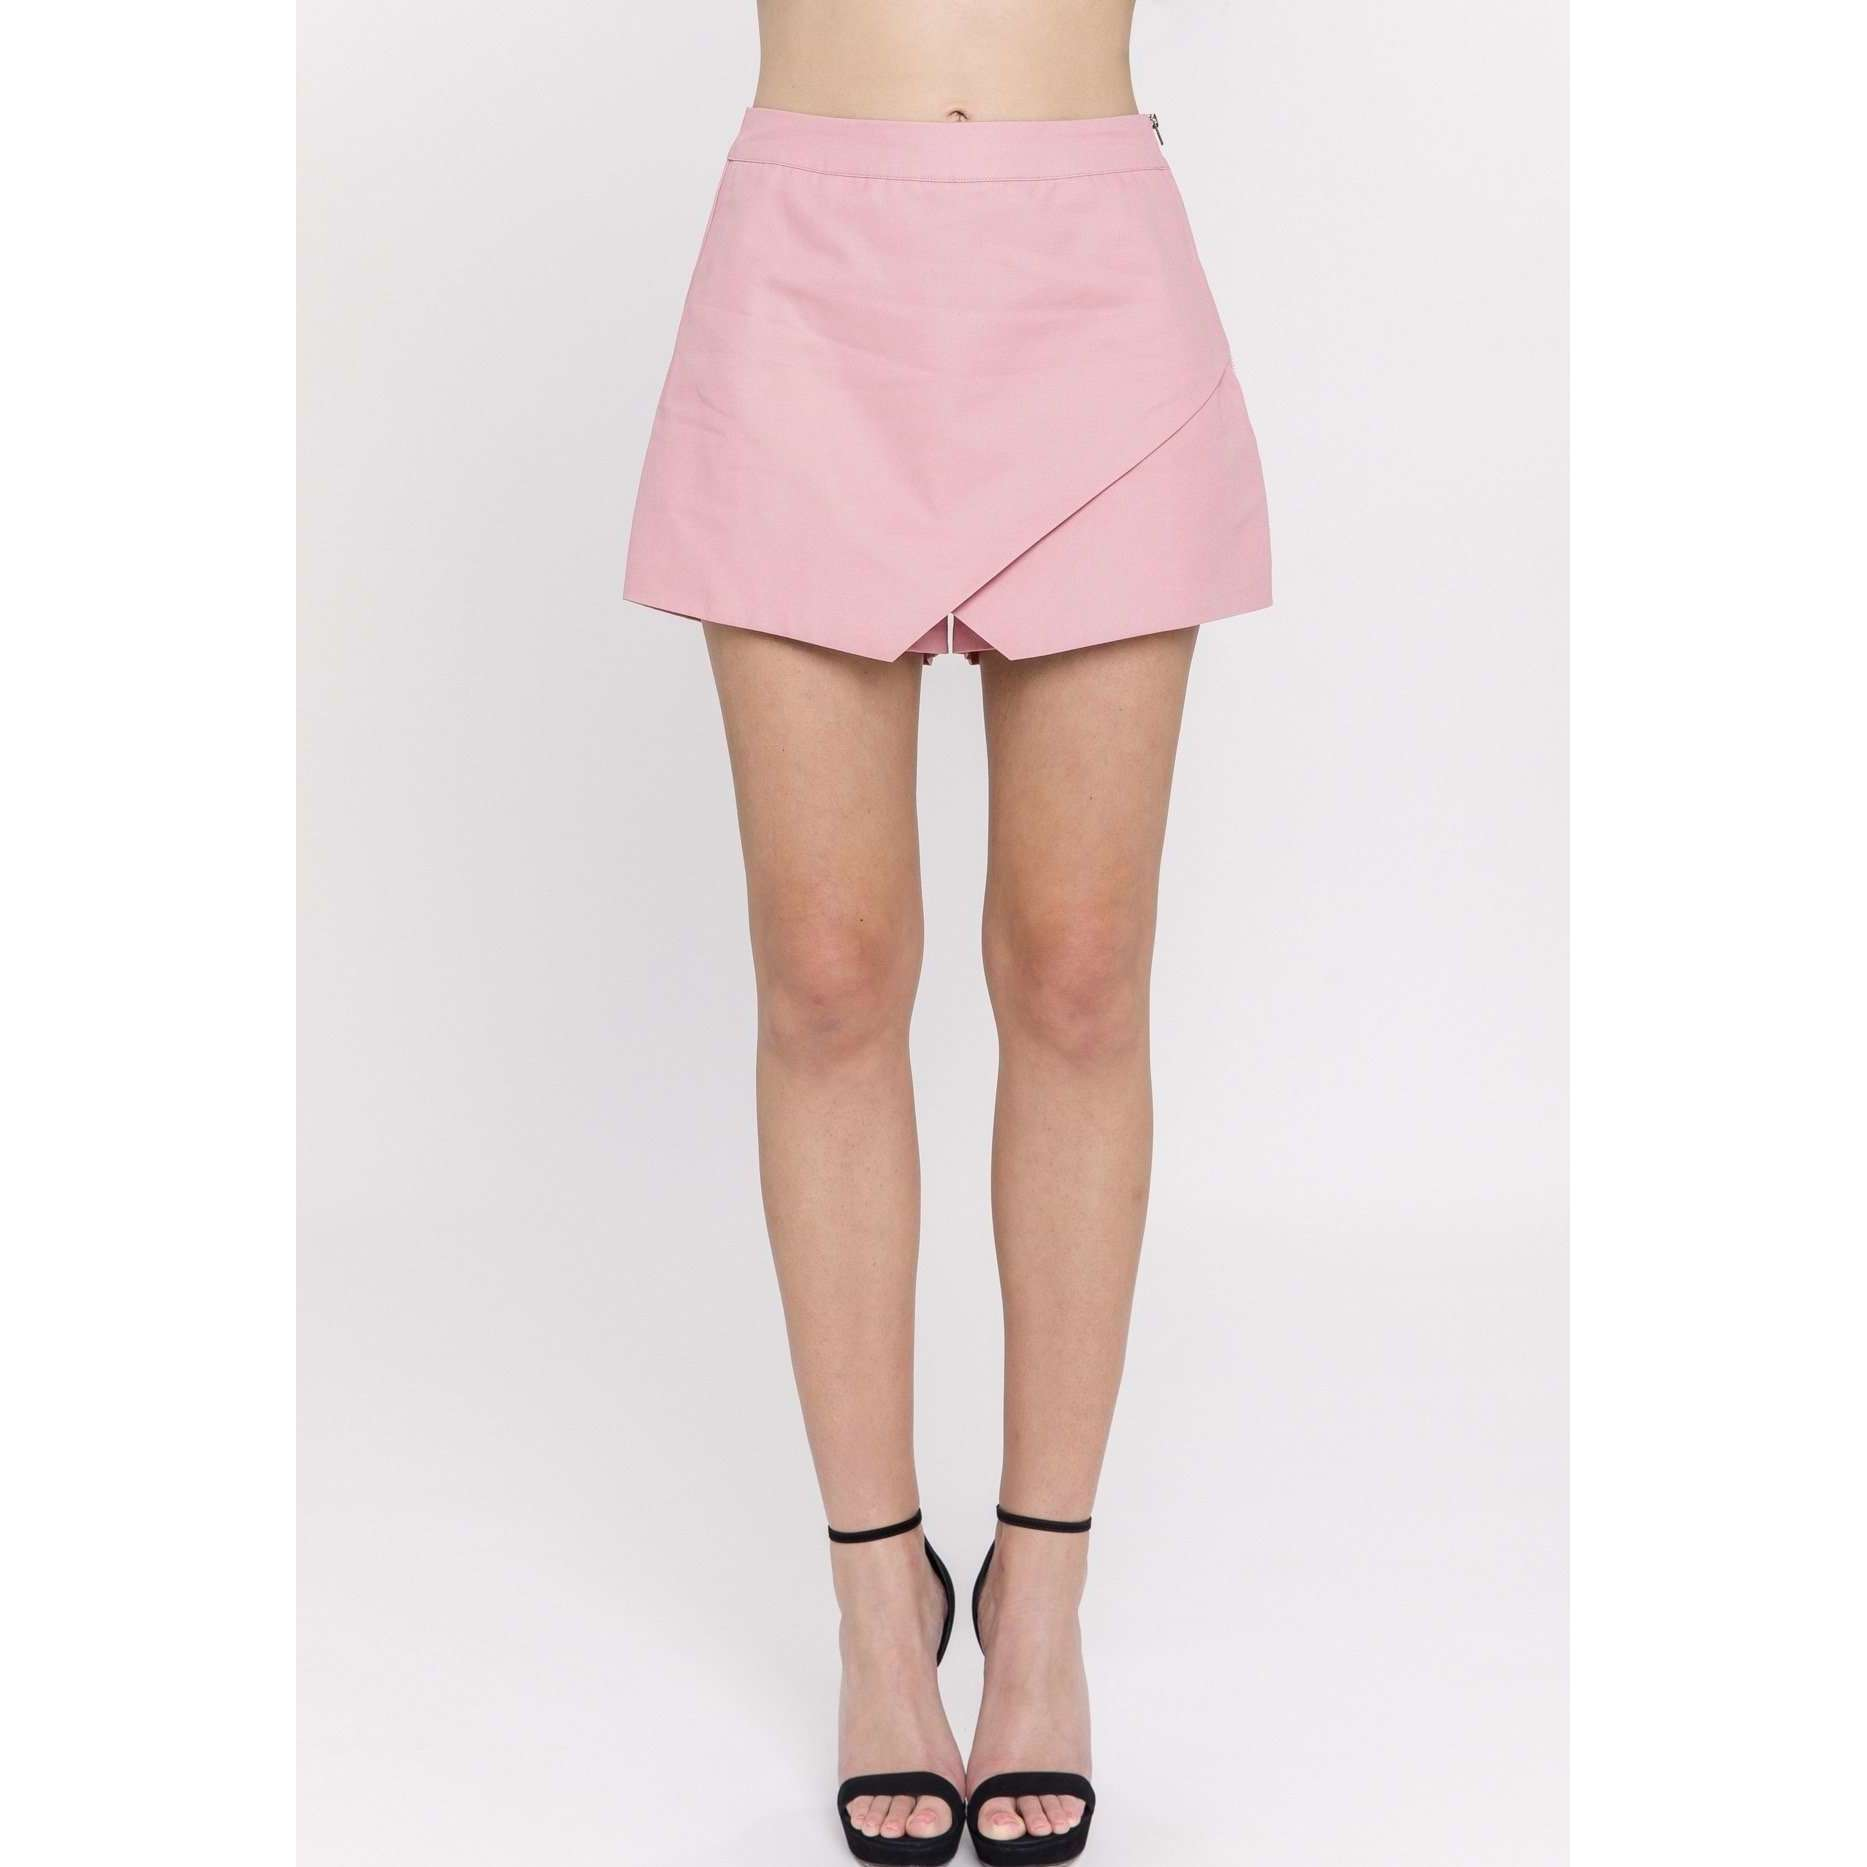 8.28 Boutique:English Factory,English Factory Better Be Sweet Skort,bottoms